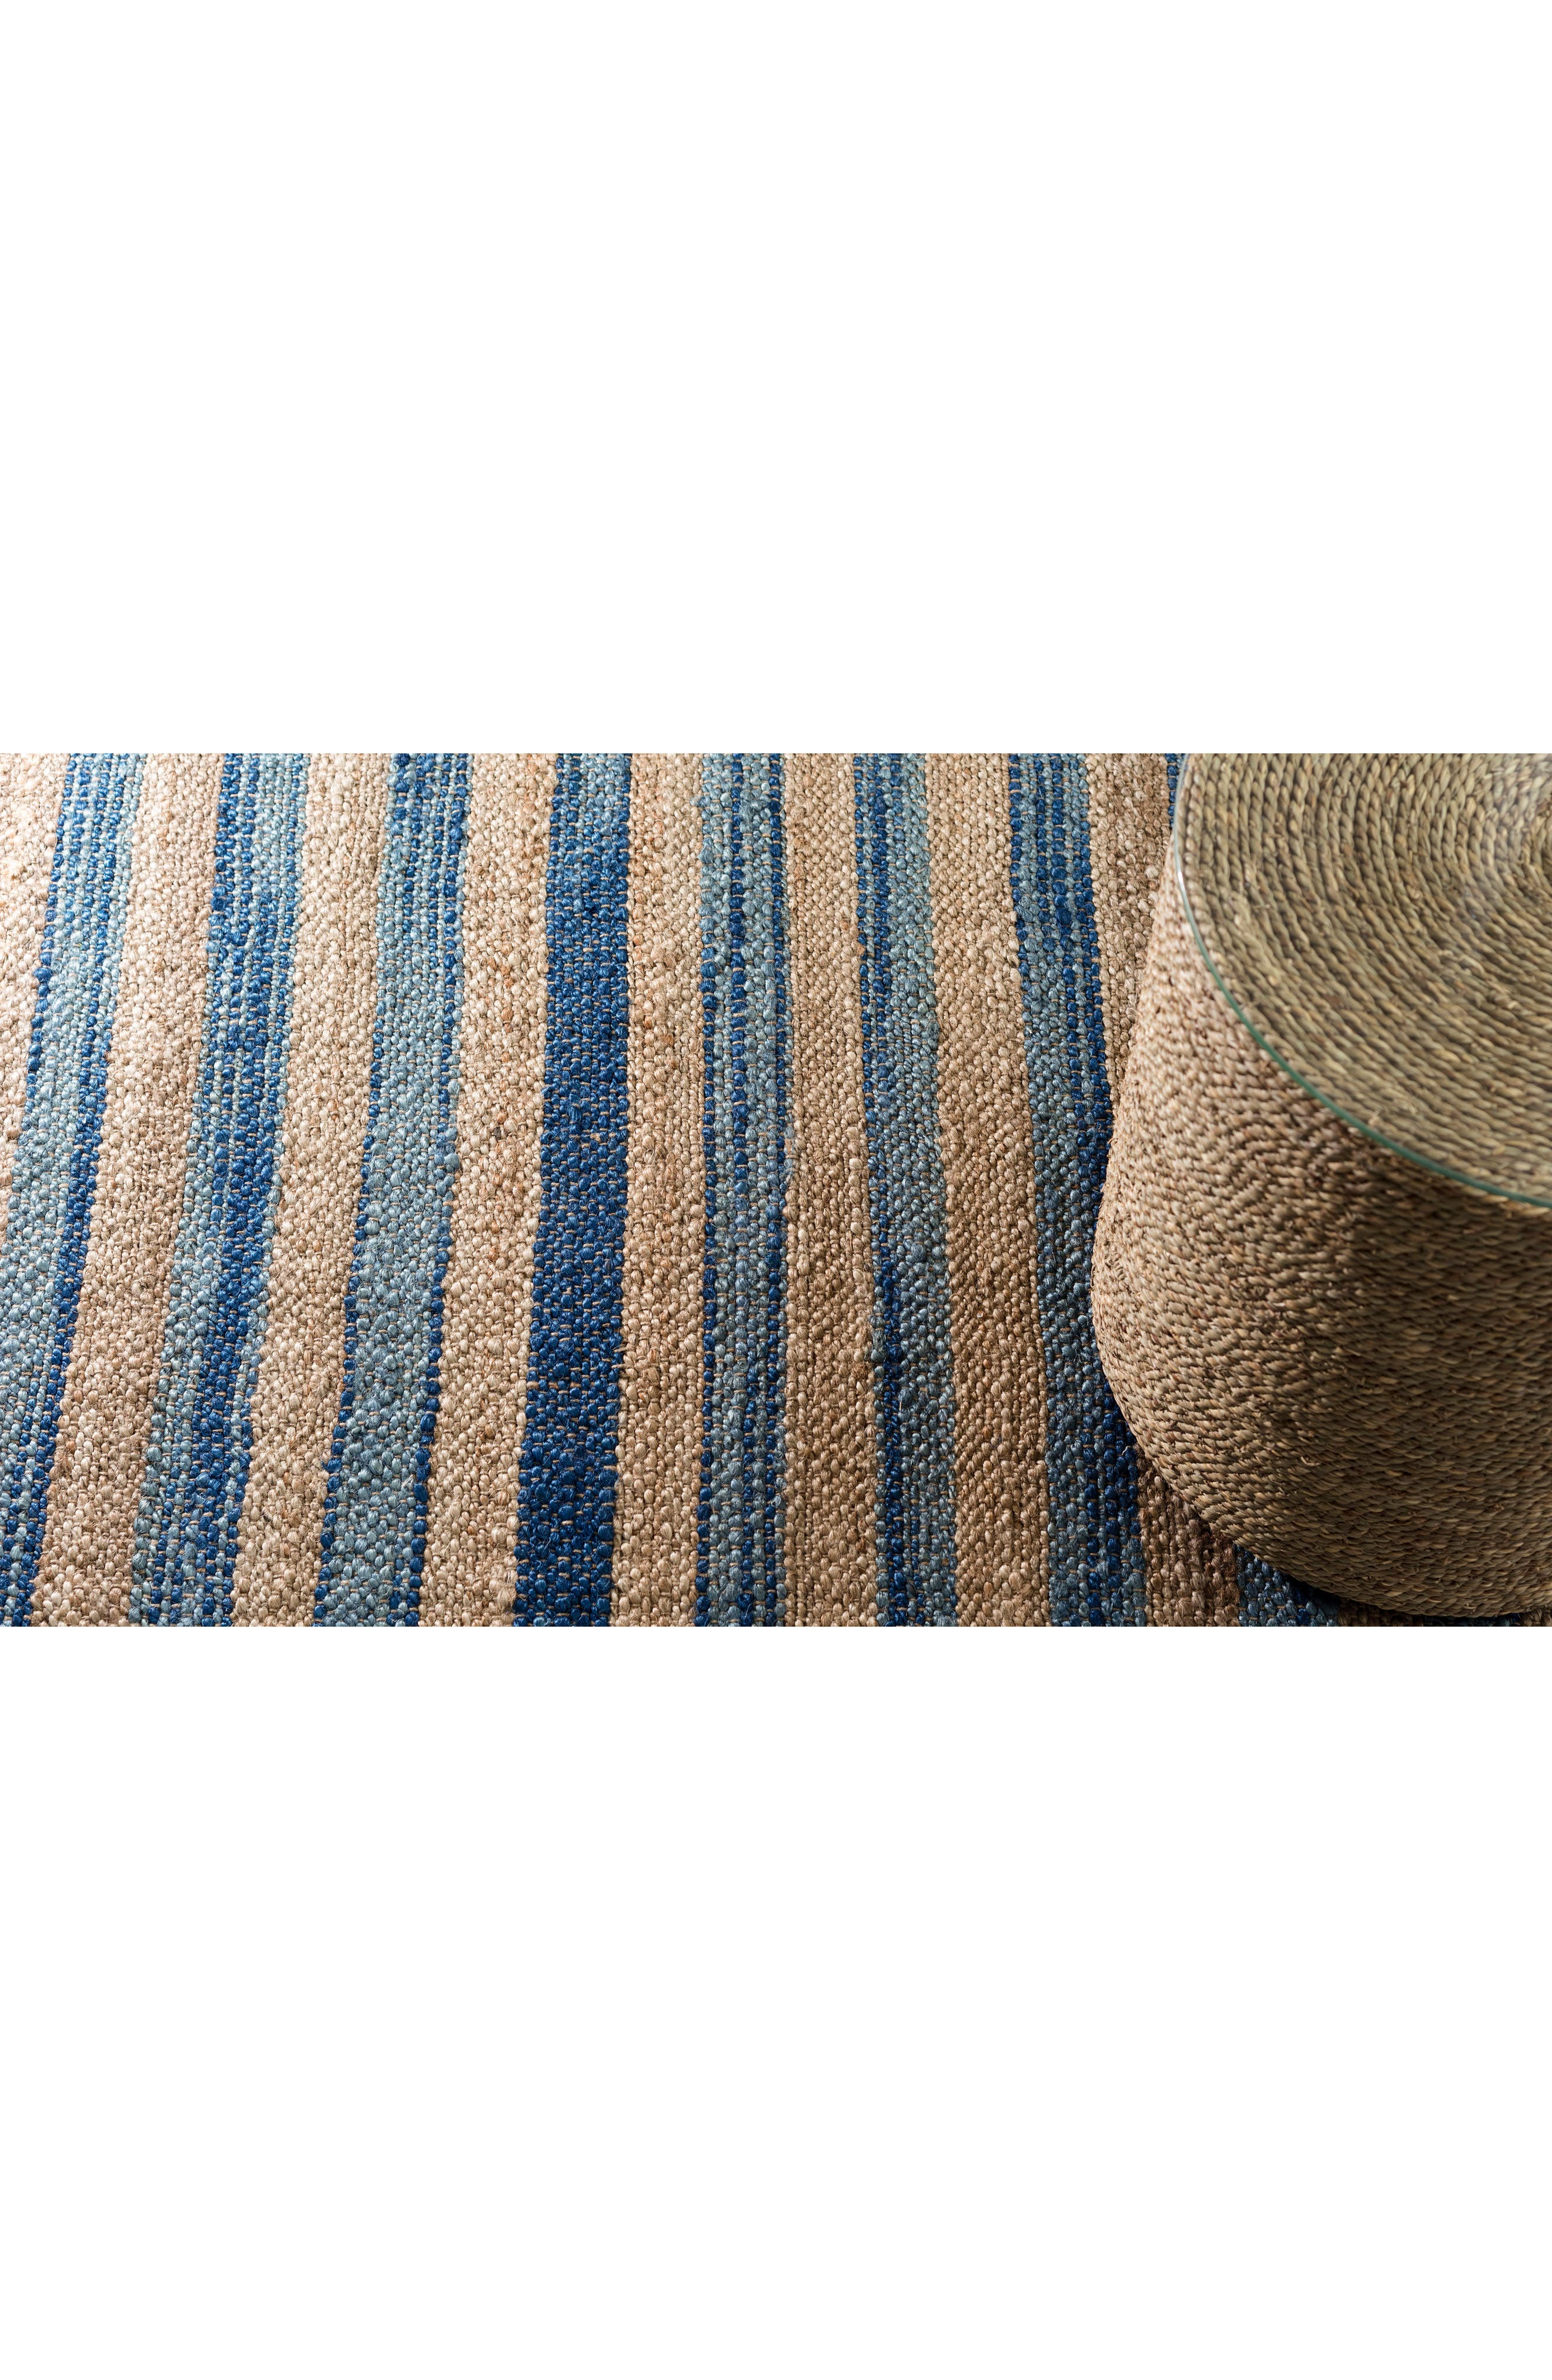 Corfu Woven Wool Rug,                             Alternate thumbnail 3, color,                             BLUE